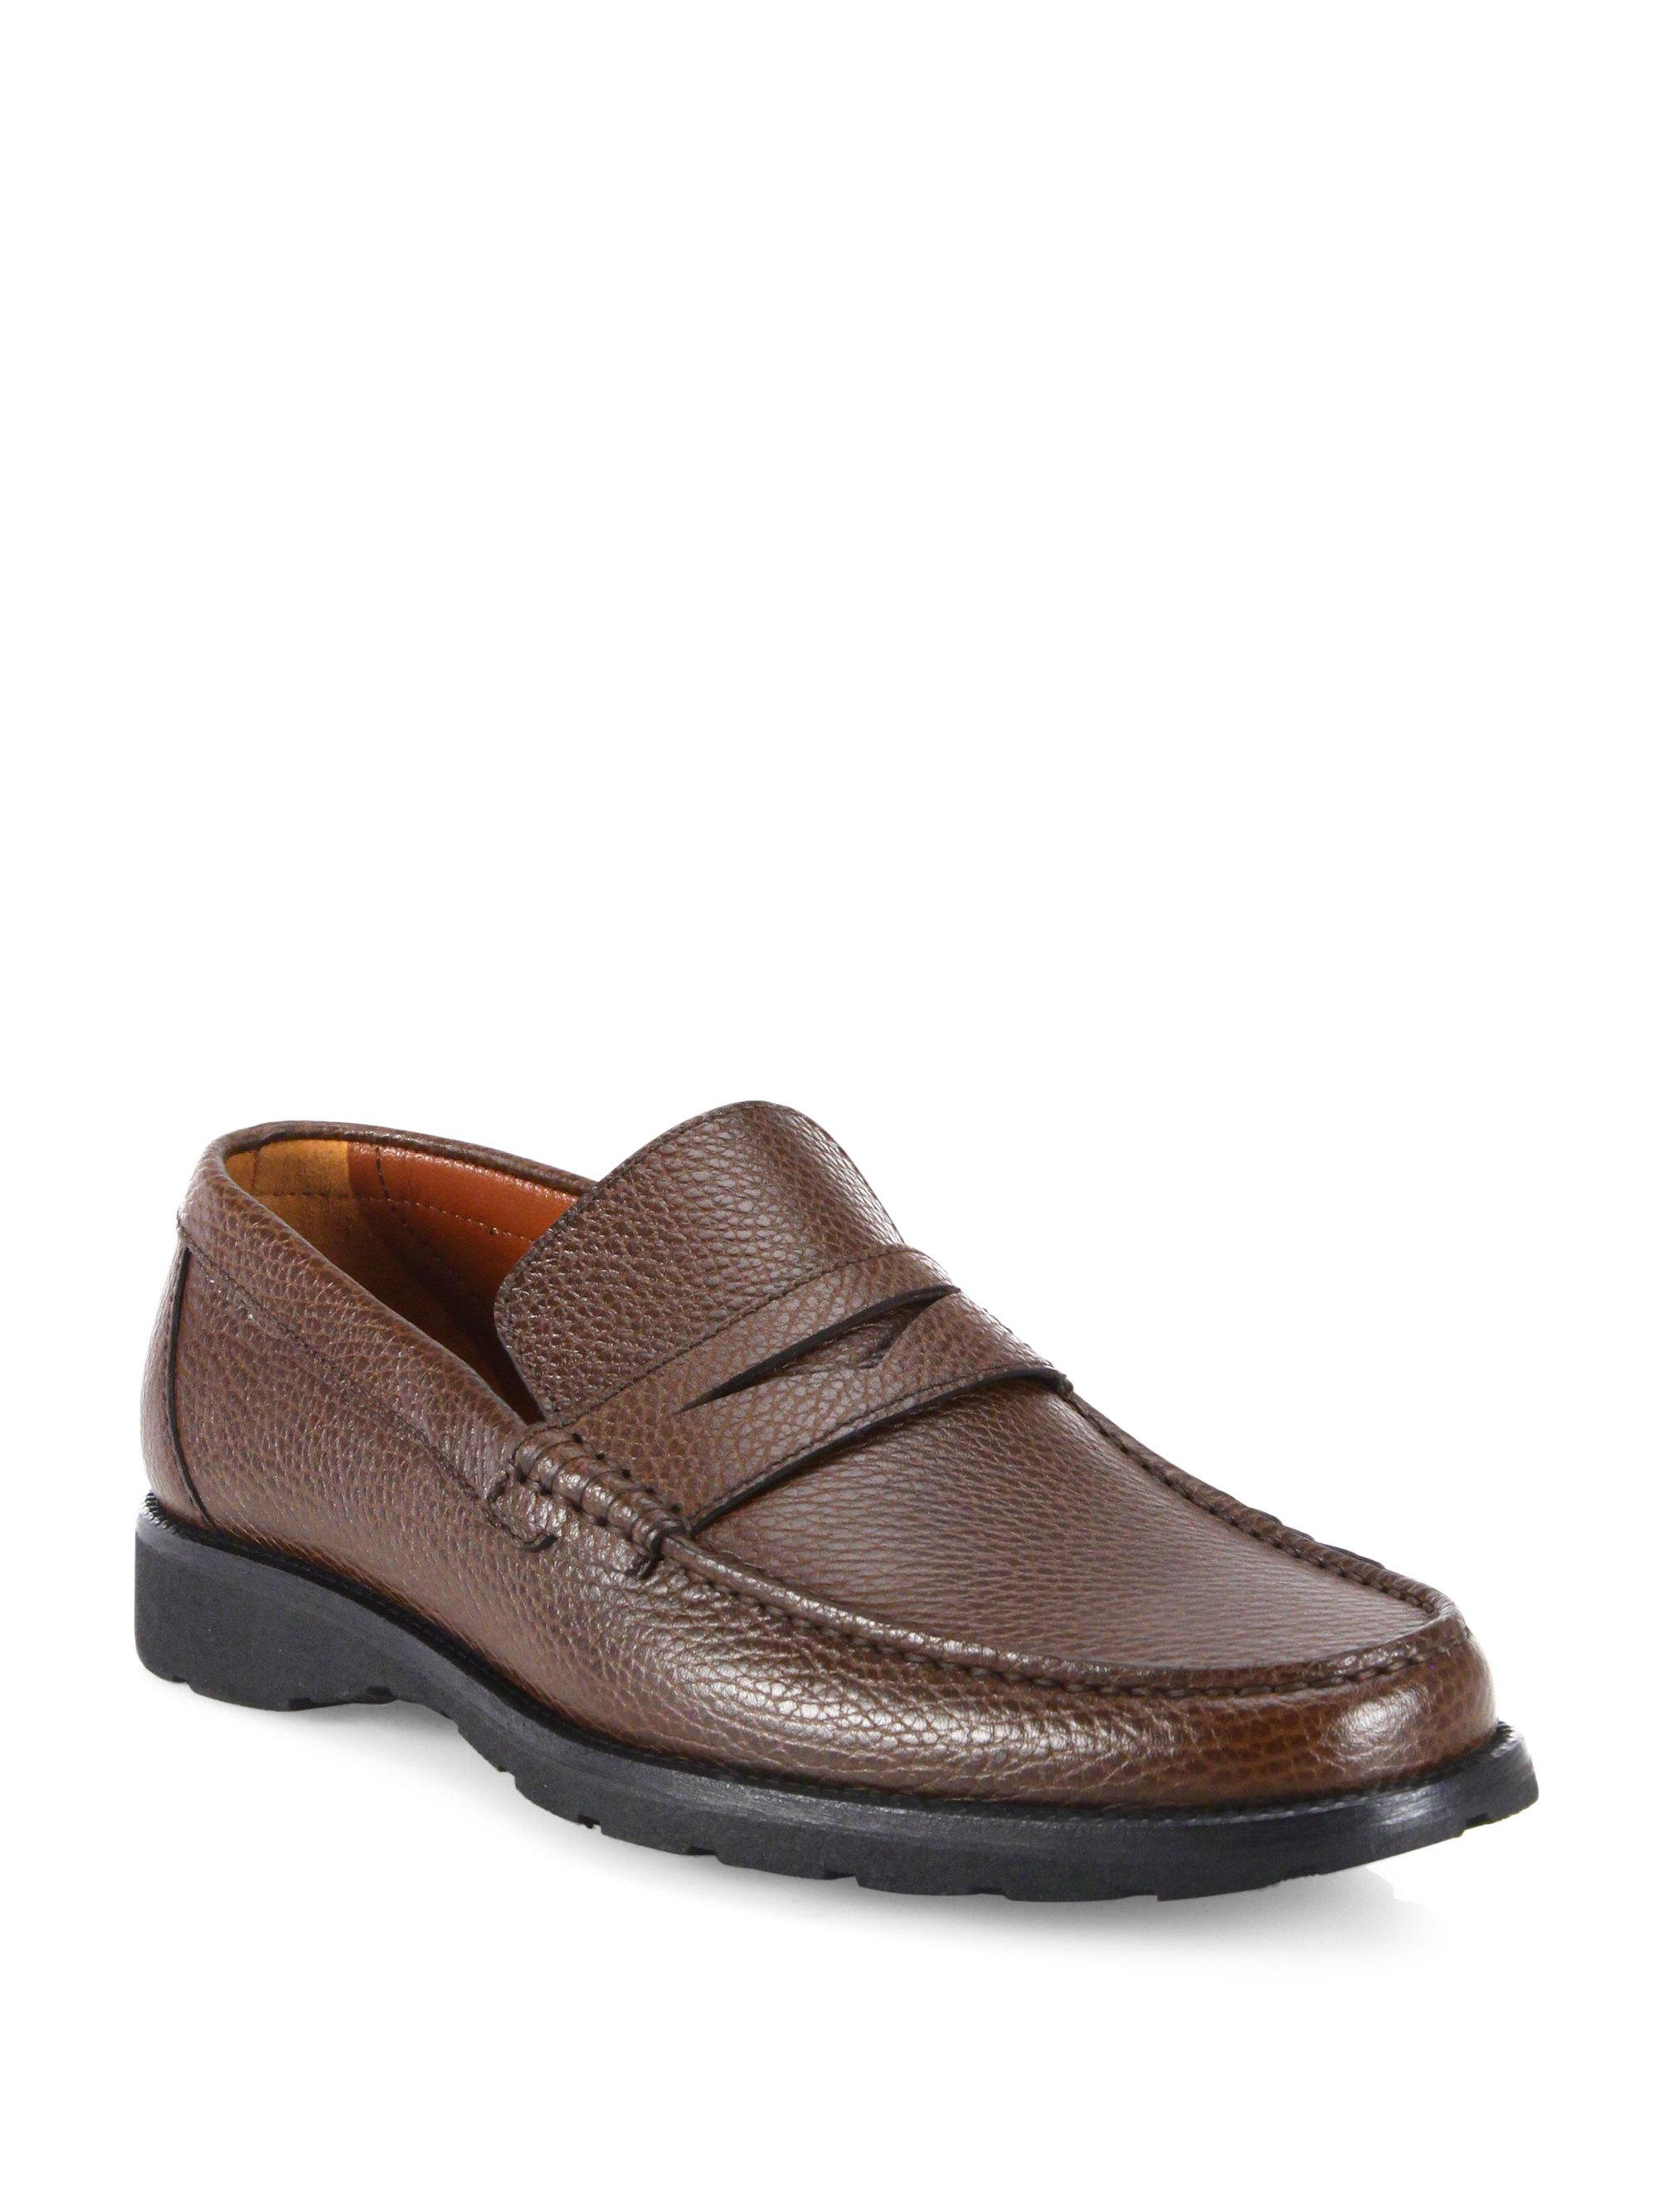 A.Testoni. Men's Brown Pebbled Leather Penny Loafers